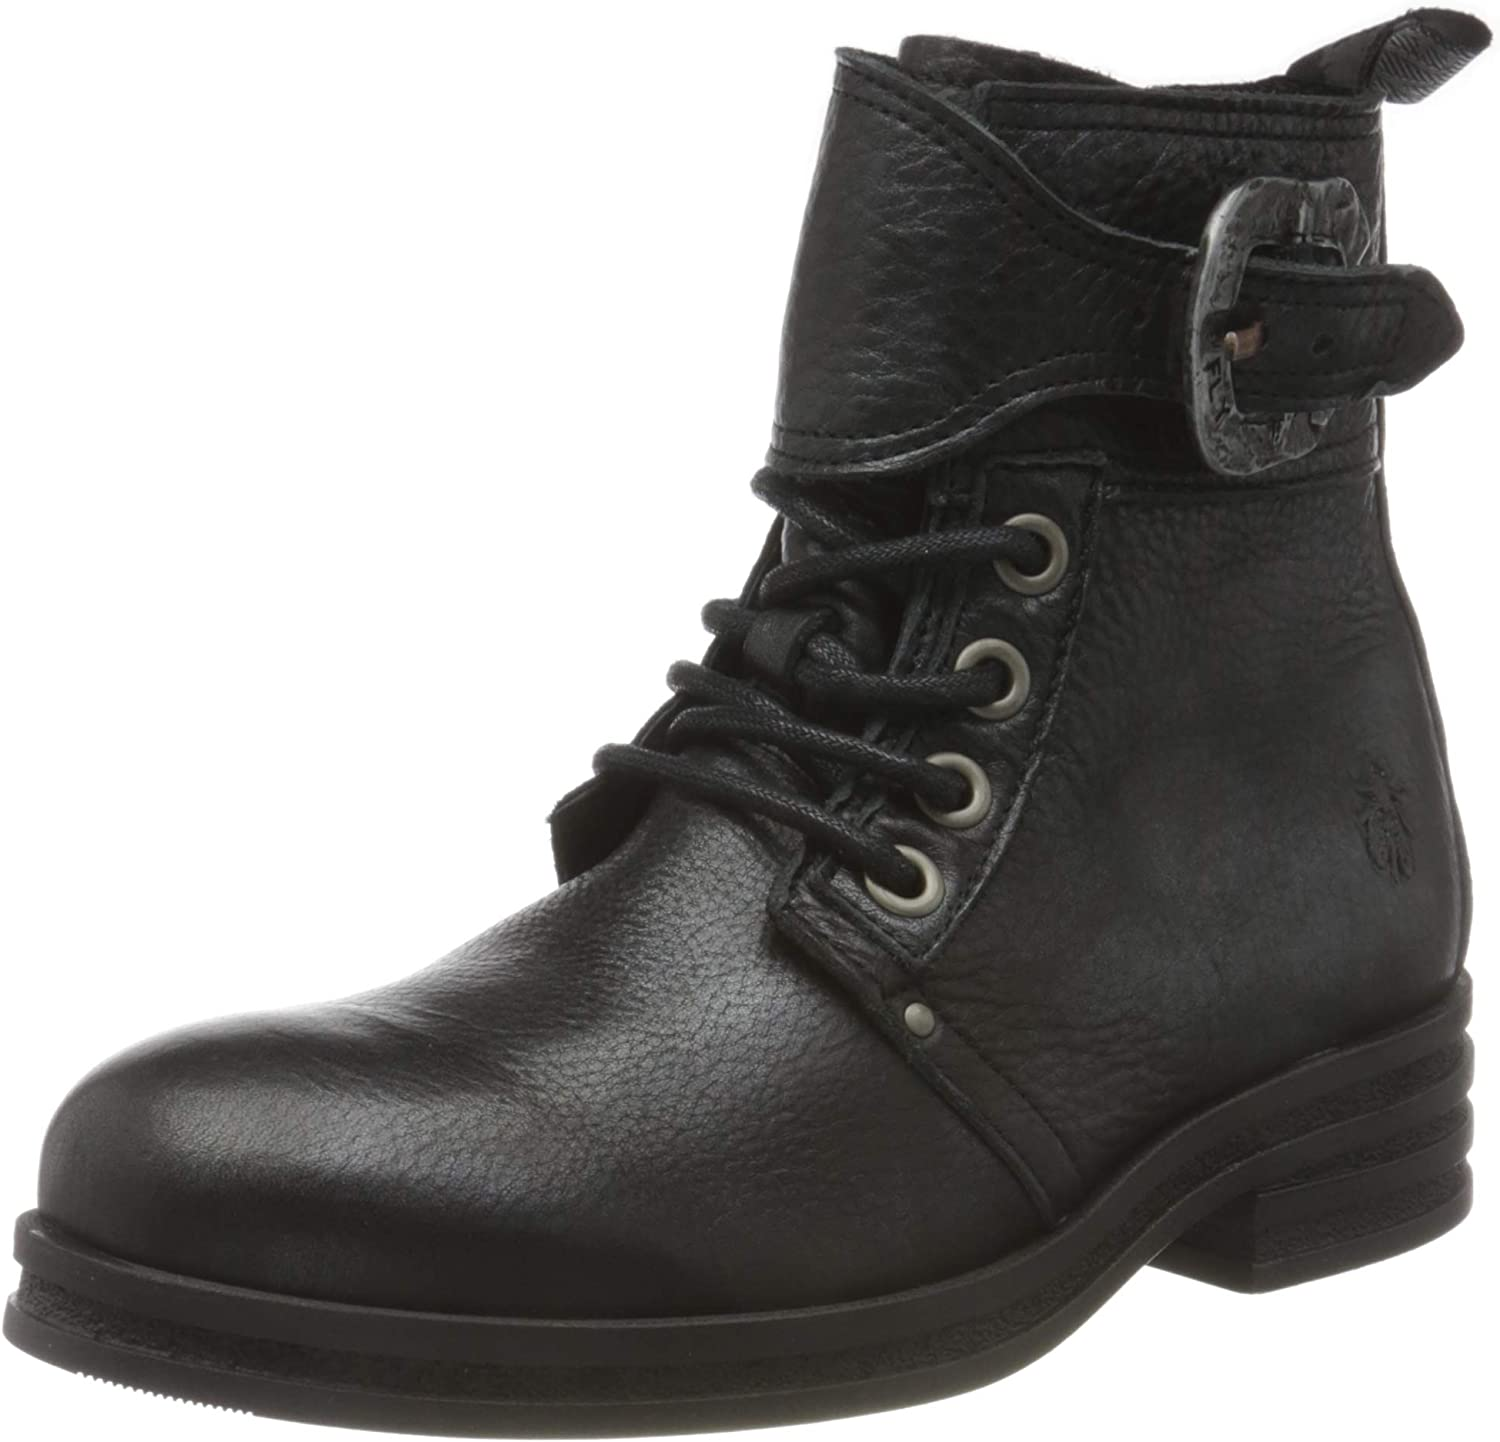 FLY LONDON Some reservation Women's KARA664FLY Quality inspection Black Combat Boot Silver